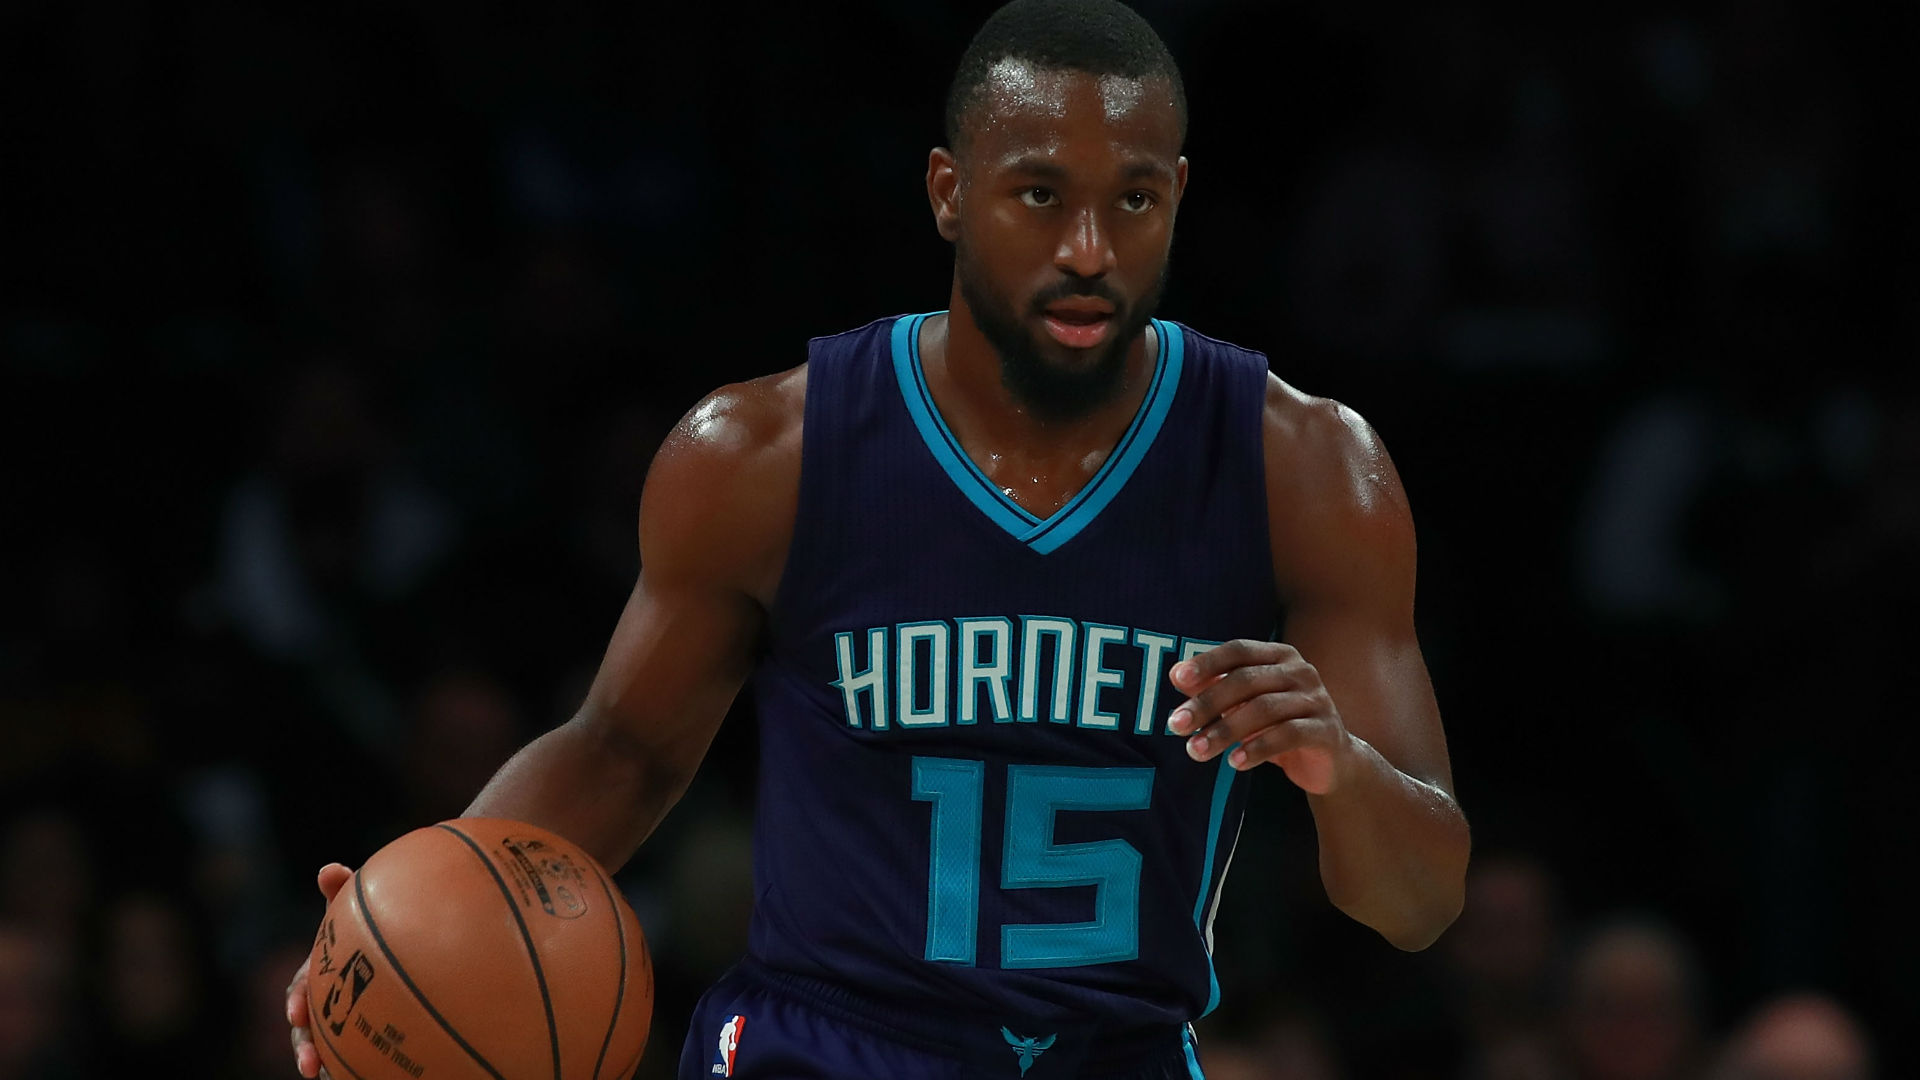 Hornets G Kemba Walker on if he's a superstar: 'I don't know if I can put myself in that category'